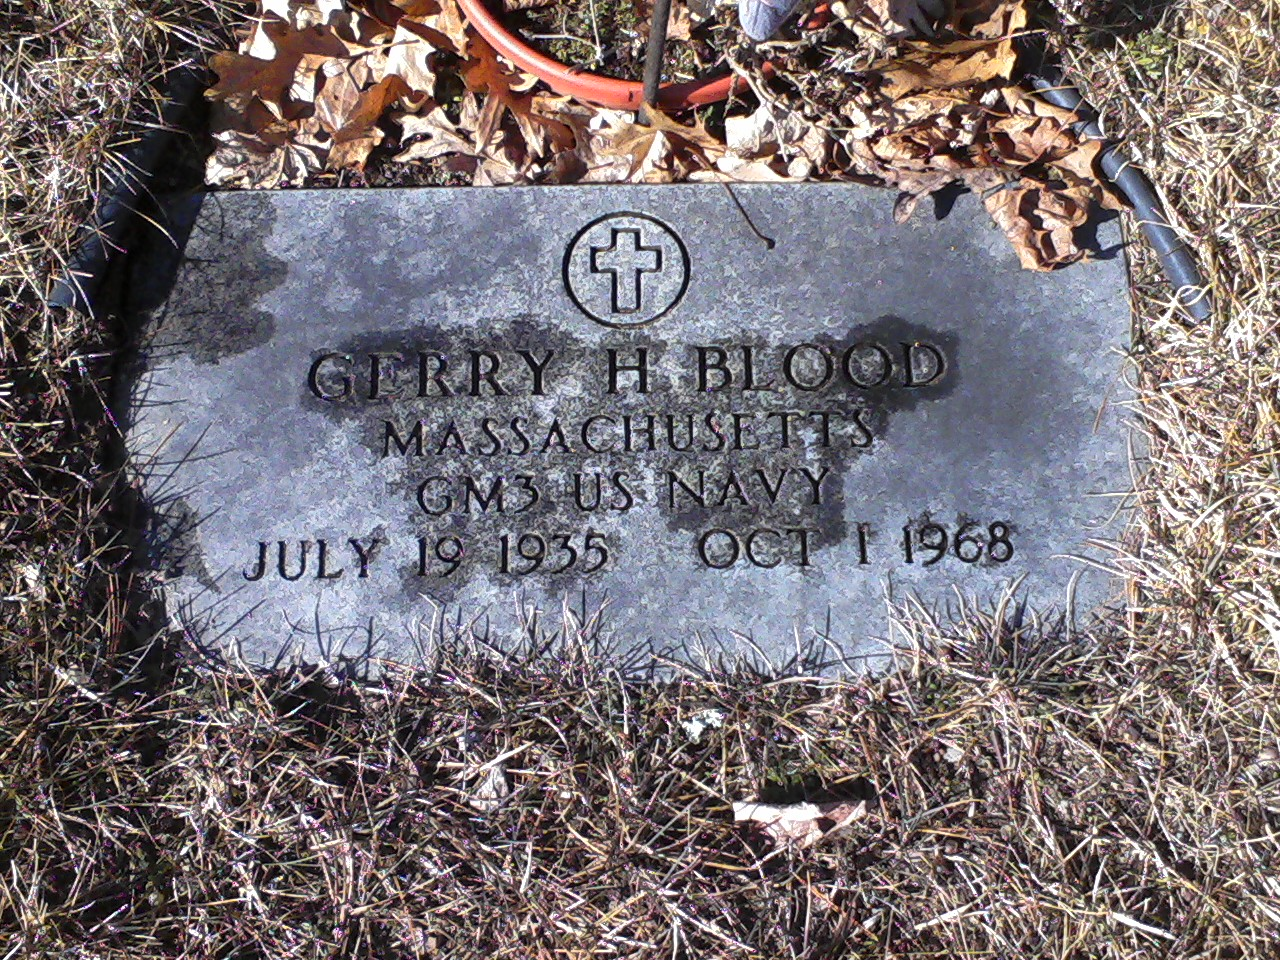 Gerry Harland Blood